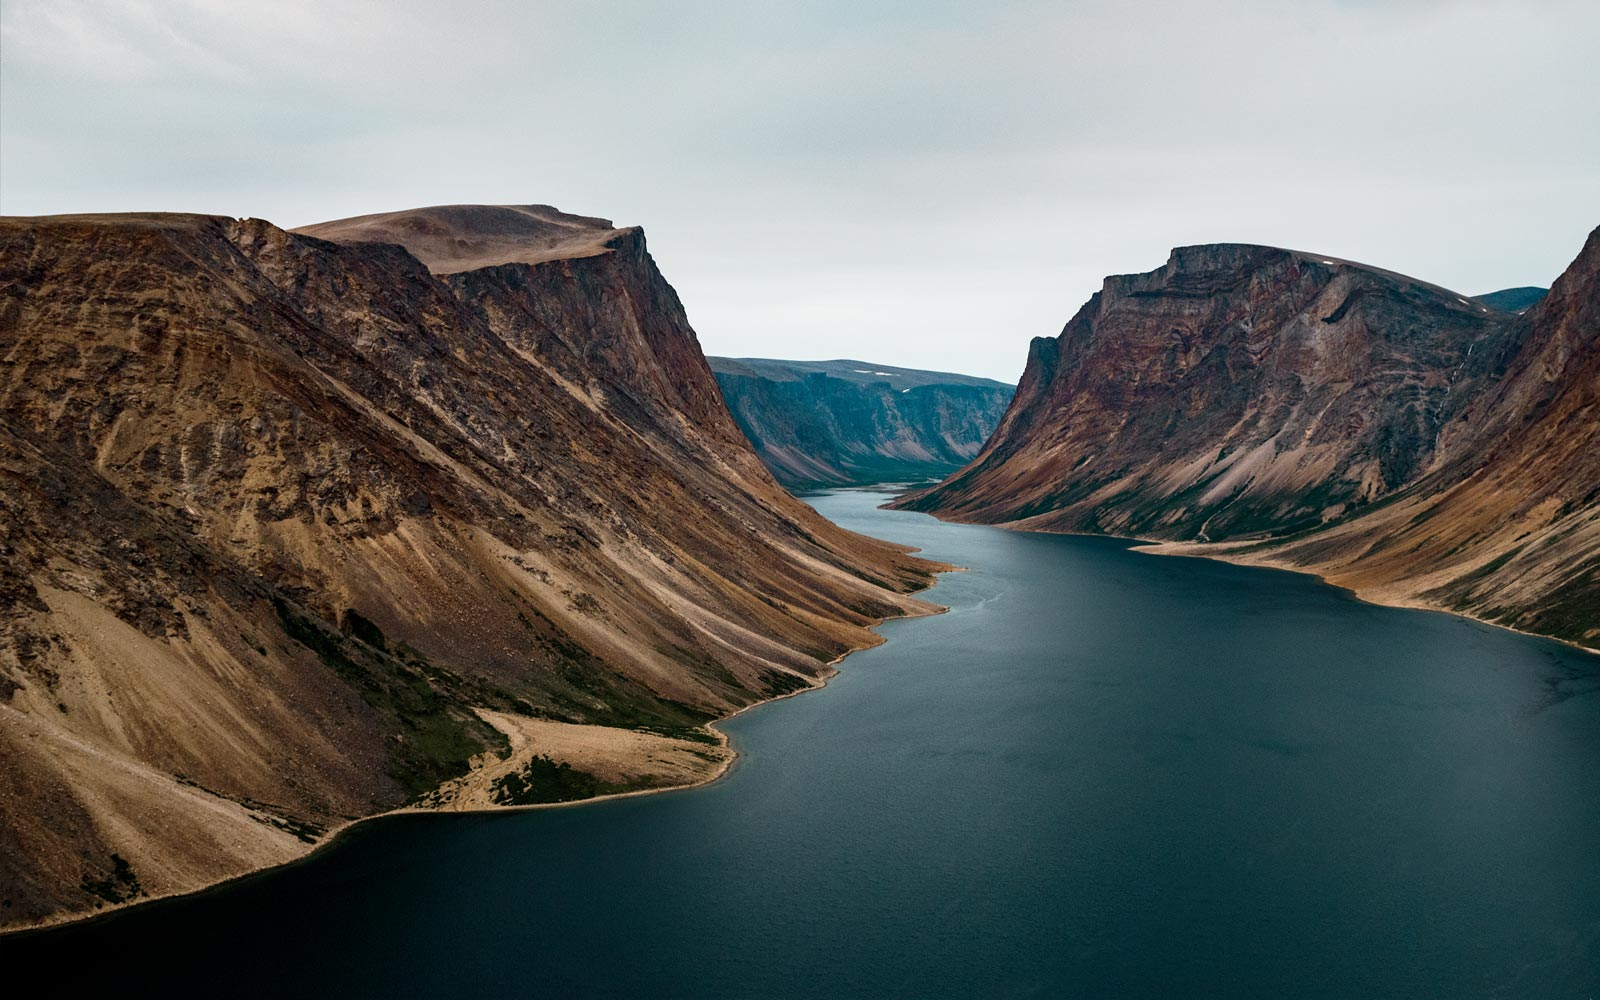 Torngat Mountains National Park, in northeastern Canada